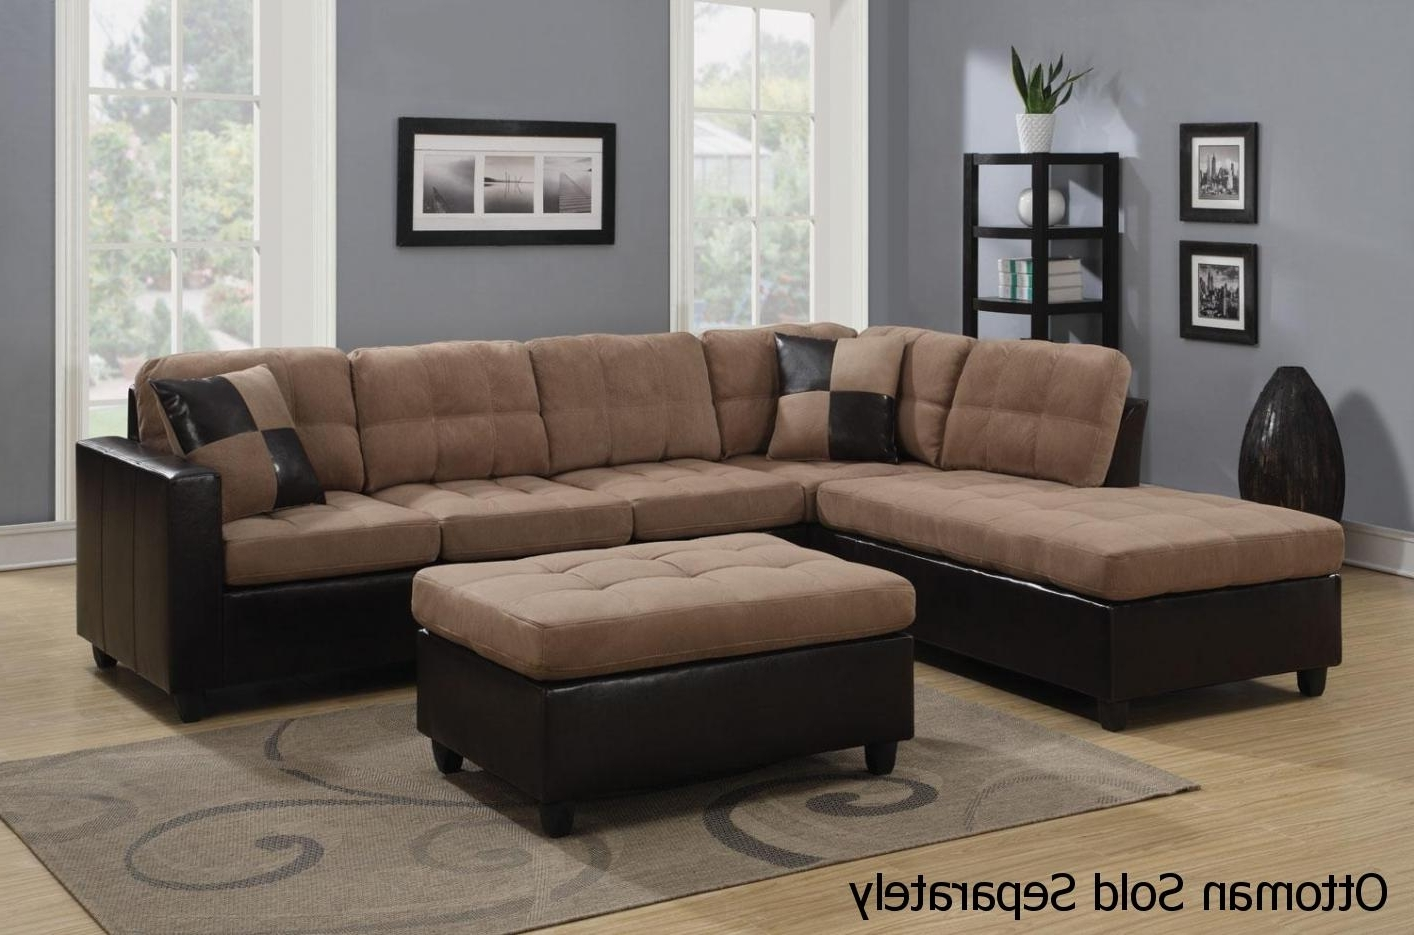 Sectional Sofas Regarding Most Popular Mallory Beige Leather Sectional Sofa – Steal A Sofa Furniture (View 5 of 15)